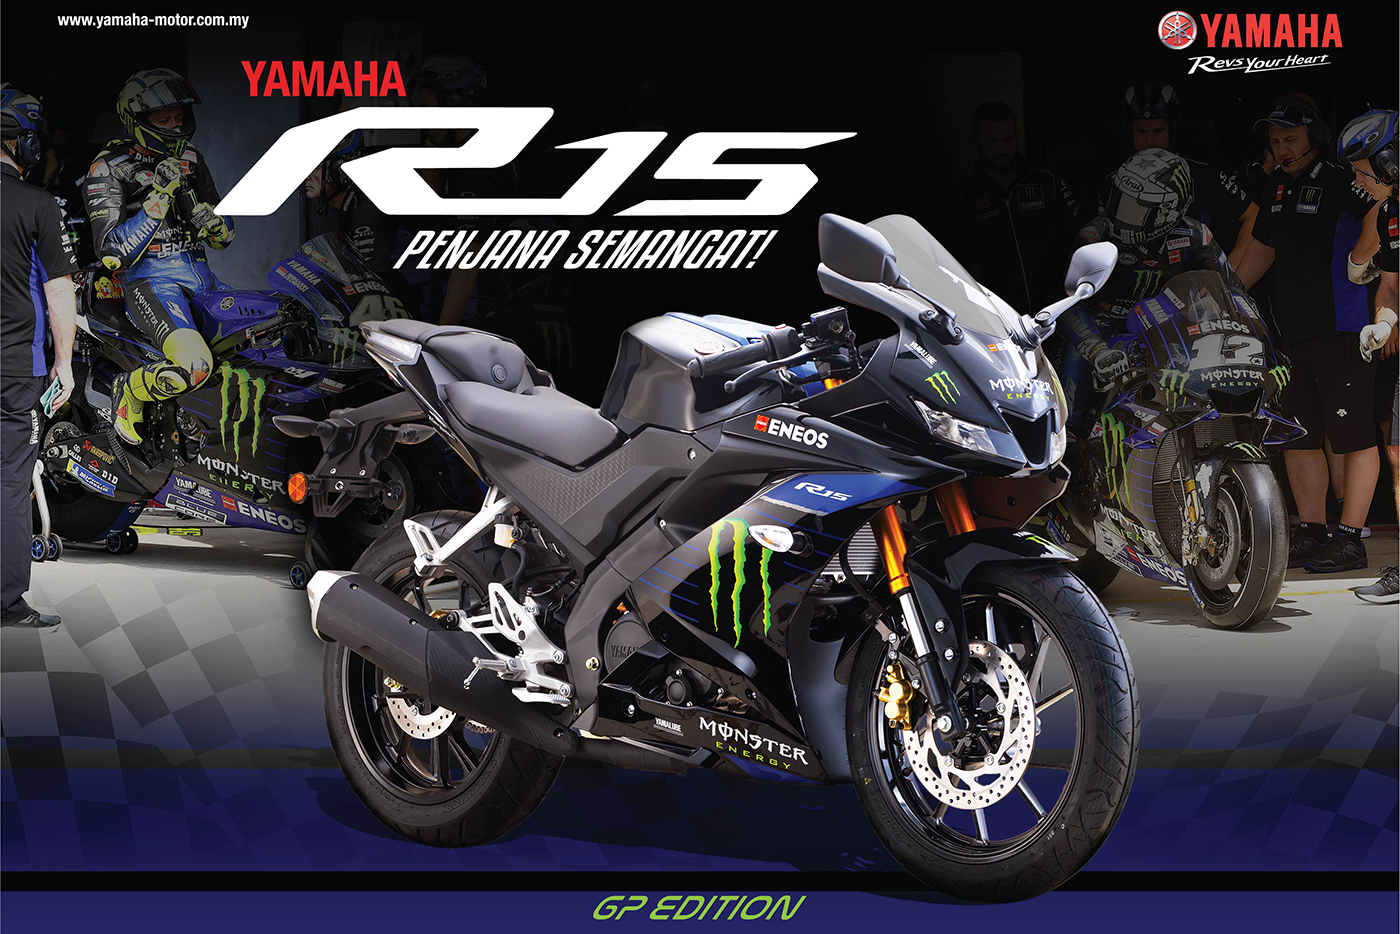 2019-yamaha-yzf-r15-monster-limited-edition-brochure-2.jpg